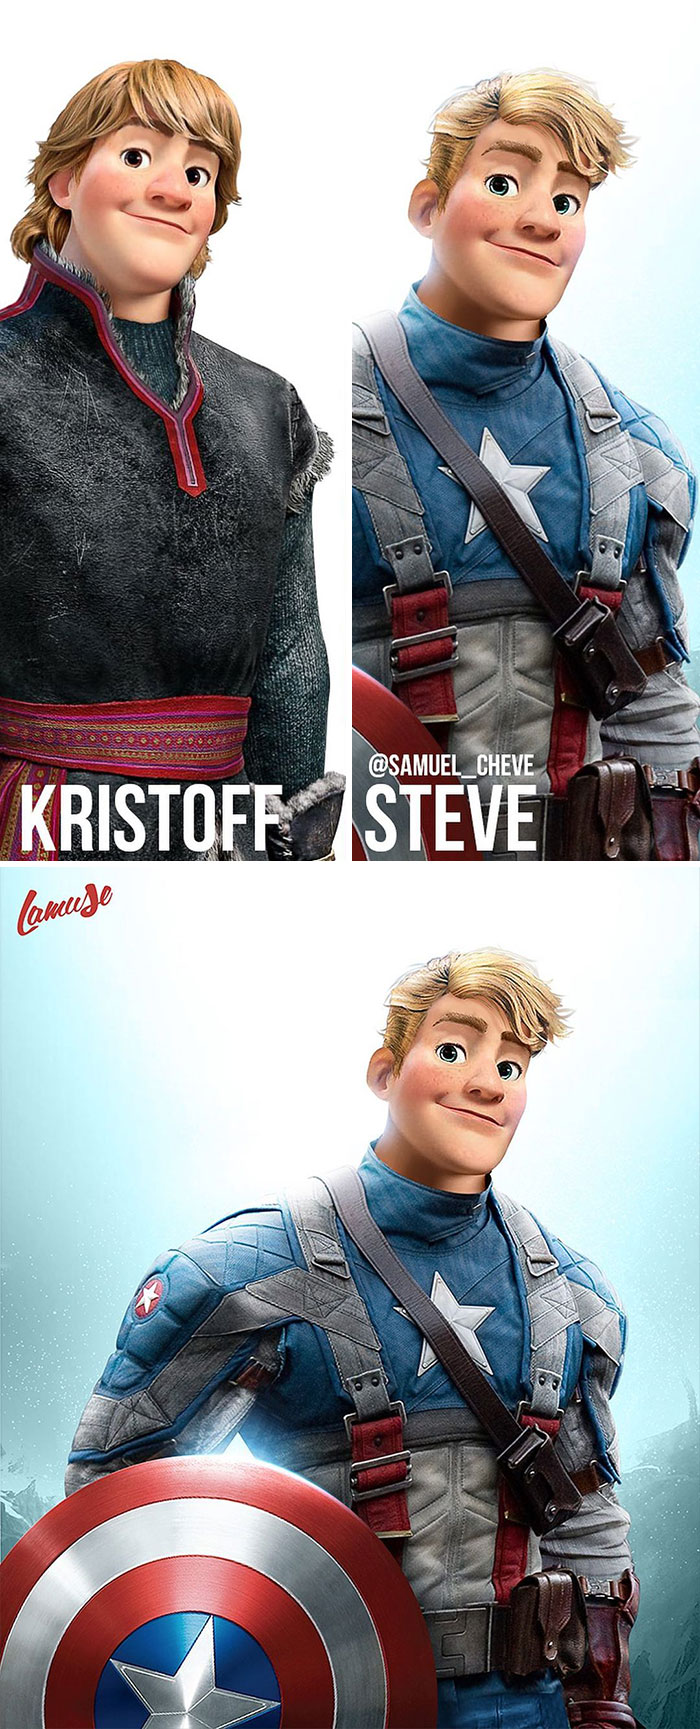 Kristoff And Steve Rogers 'Captain America'